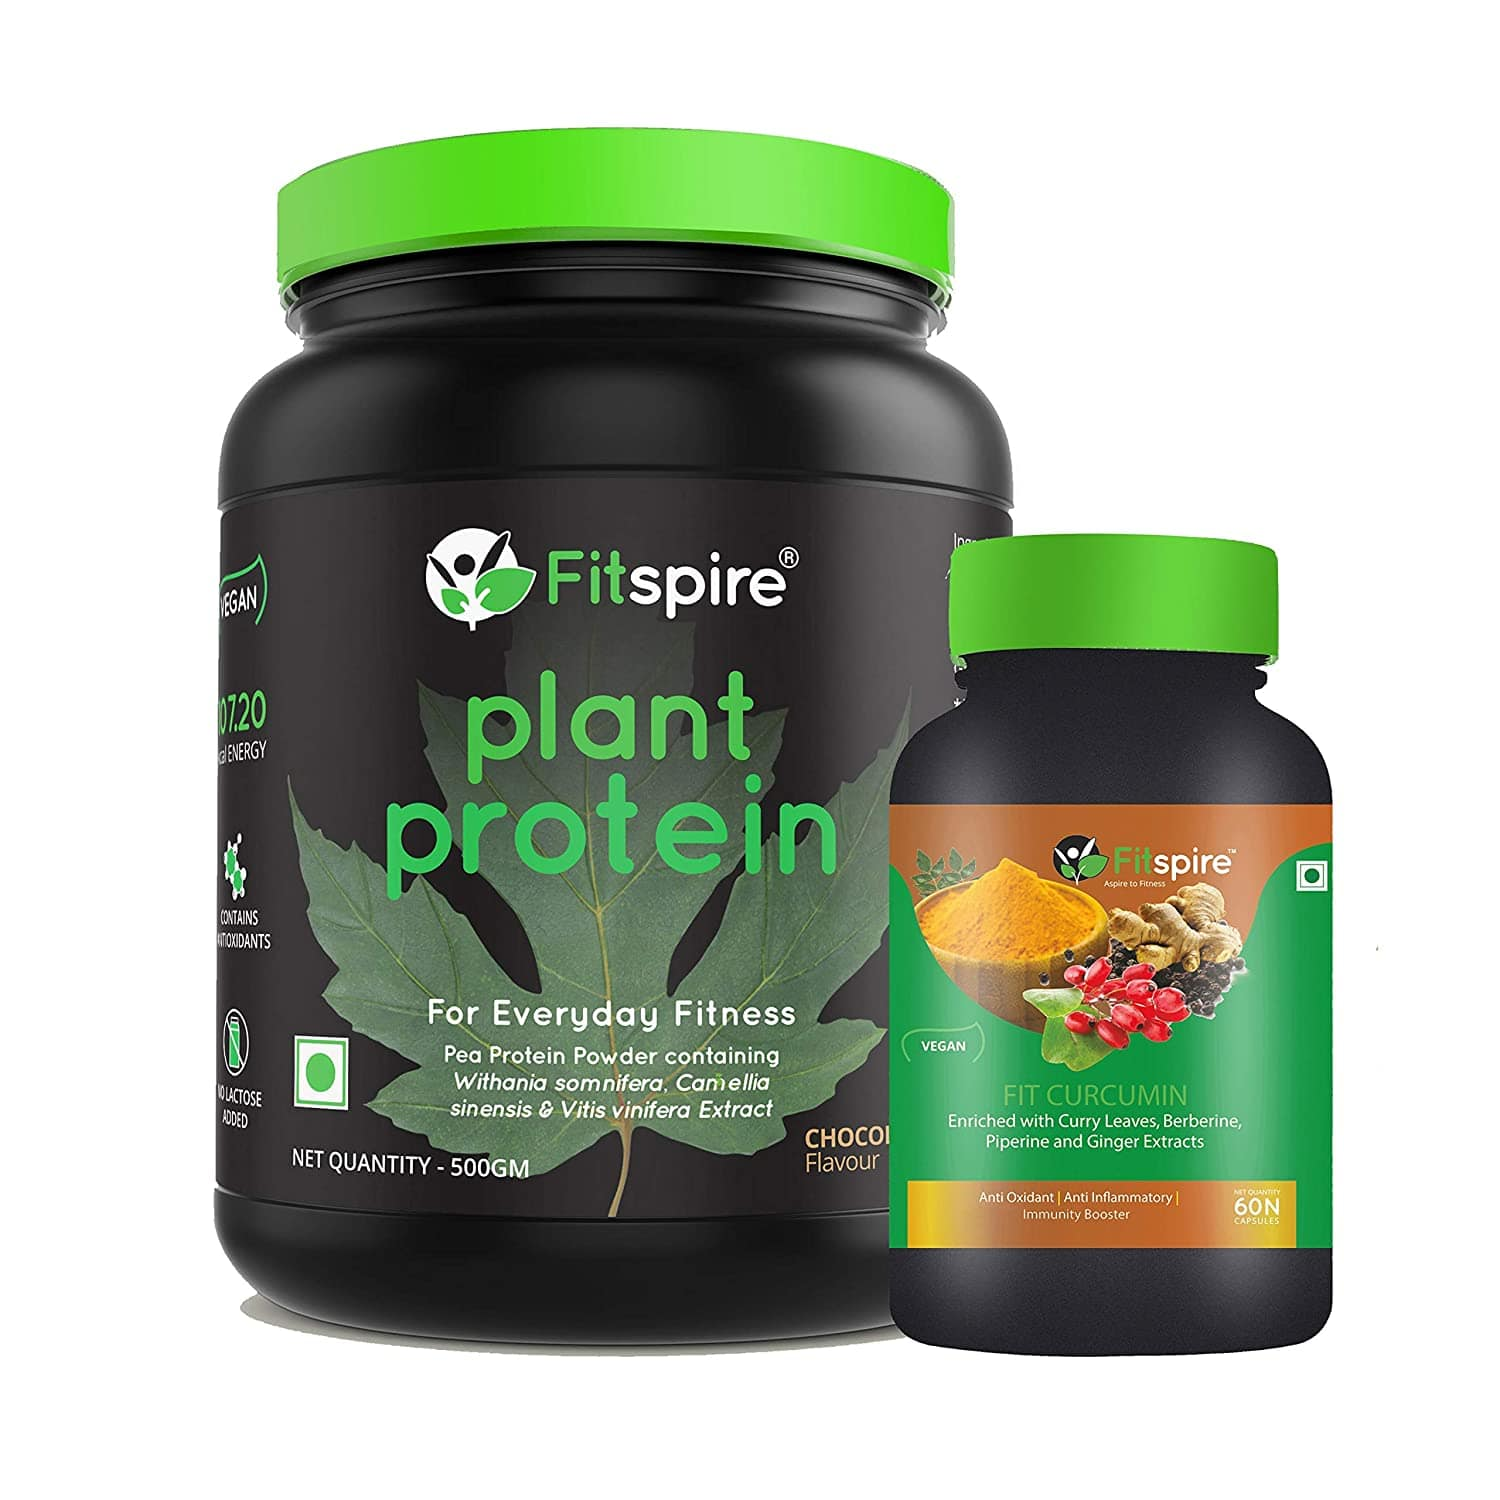 Fitspire Plant Protein with Curcumin | Pea Protein Powder | Vegan | No Lactose Added | Chocolate Flavor - 500 Gm